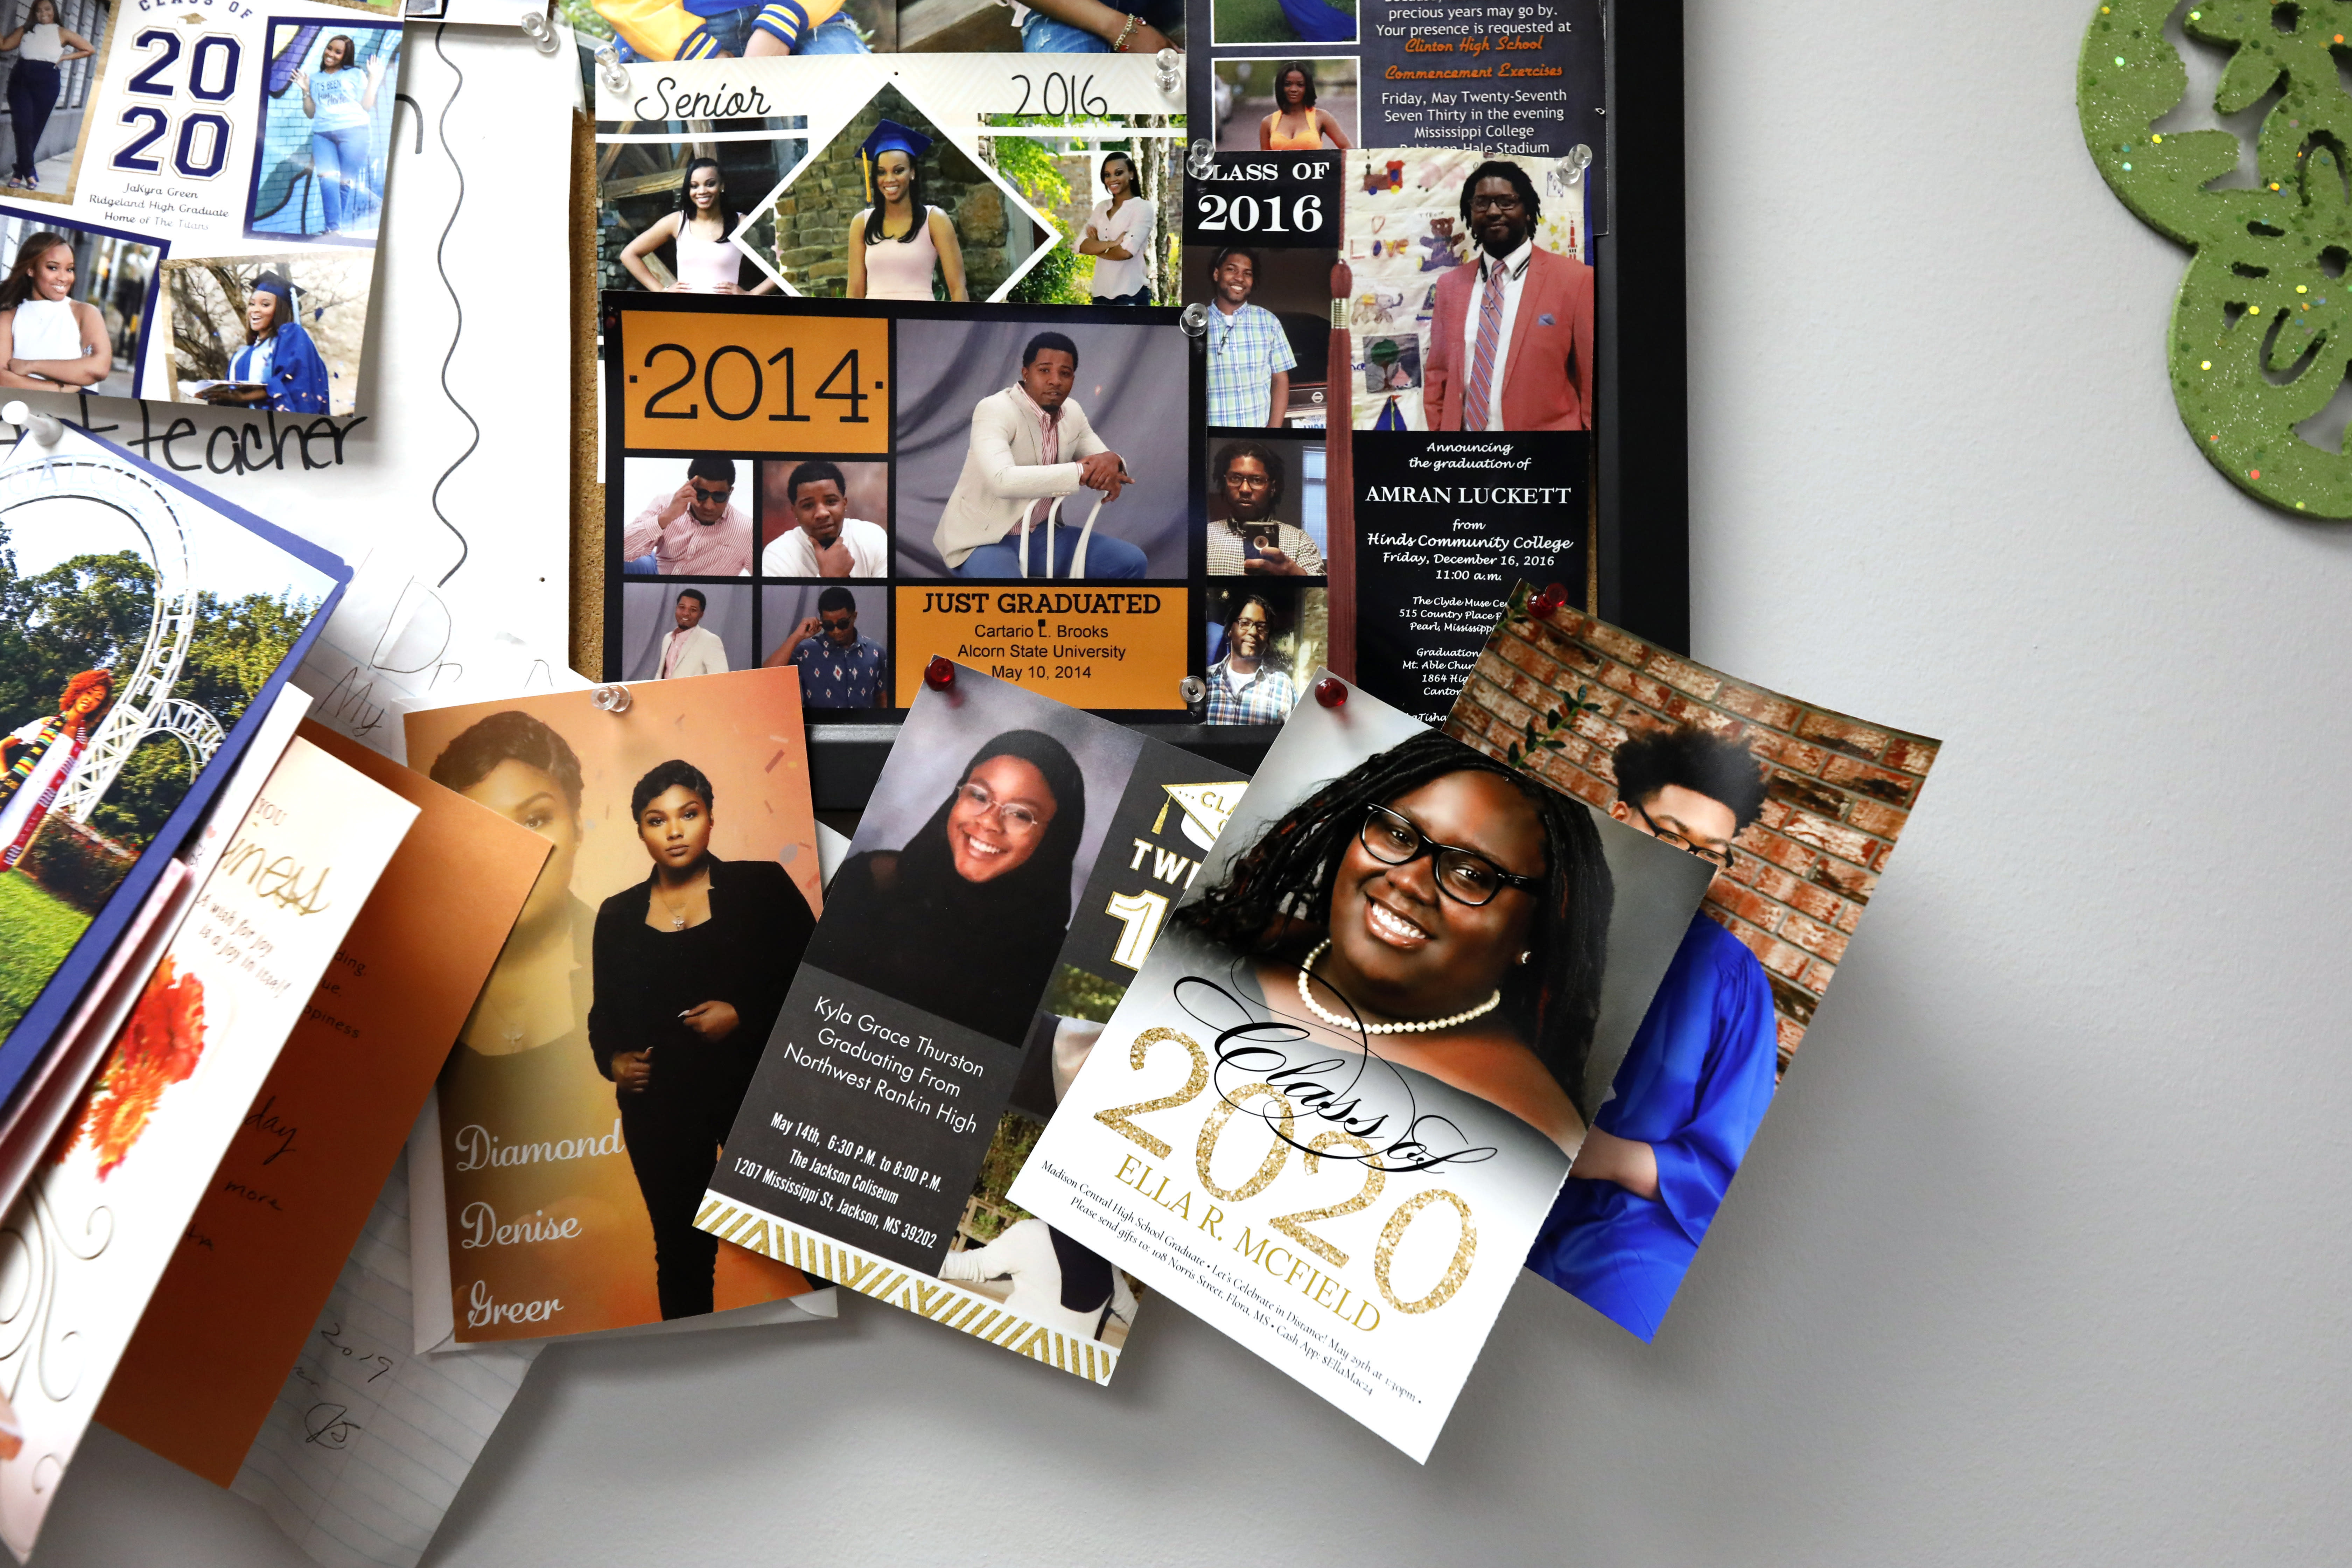 Dr. Janice Bacon's bulletin board at the Community Health Care Center on the campus of Tougaloo College is covered with senior pictures and high school graduation invitations Aug. 14, 2020, in Tougaloo, Miss. As a Black primary care physician, Bacon has created a safe space for her Black patients during the coronavirus pandemic. (AP Photo/Rogelio V. Solis)